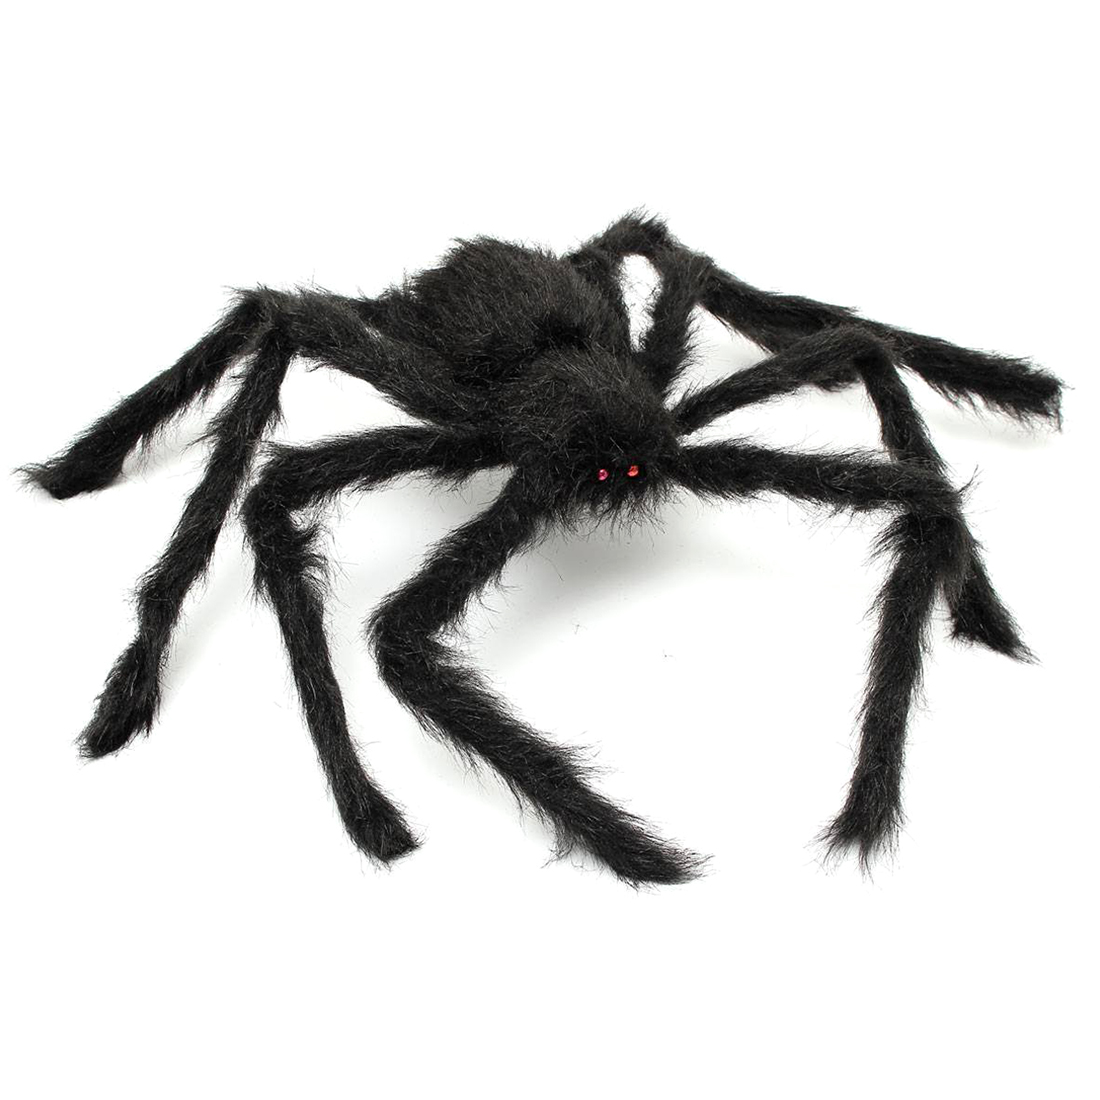 """30 NEW TOY SPIDERS FAKE CREEPY SPIDER HALLOWEEN PROP 2/"""" SIZE PARTY FAVOR PRANK"""